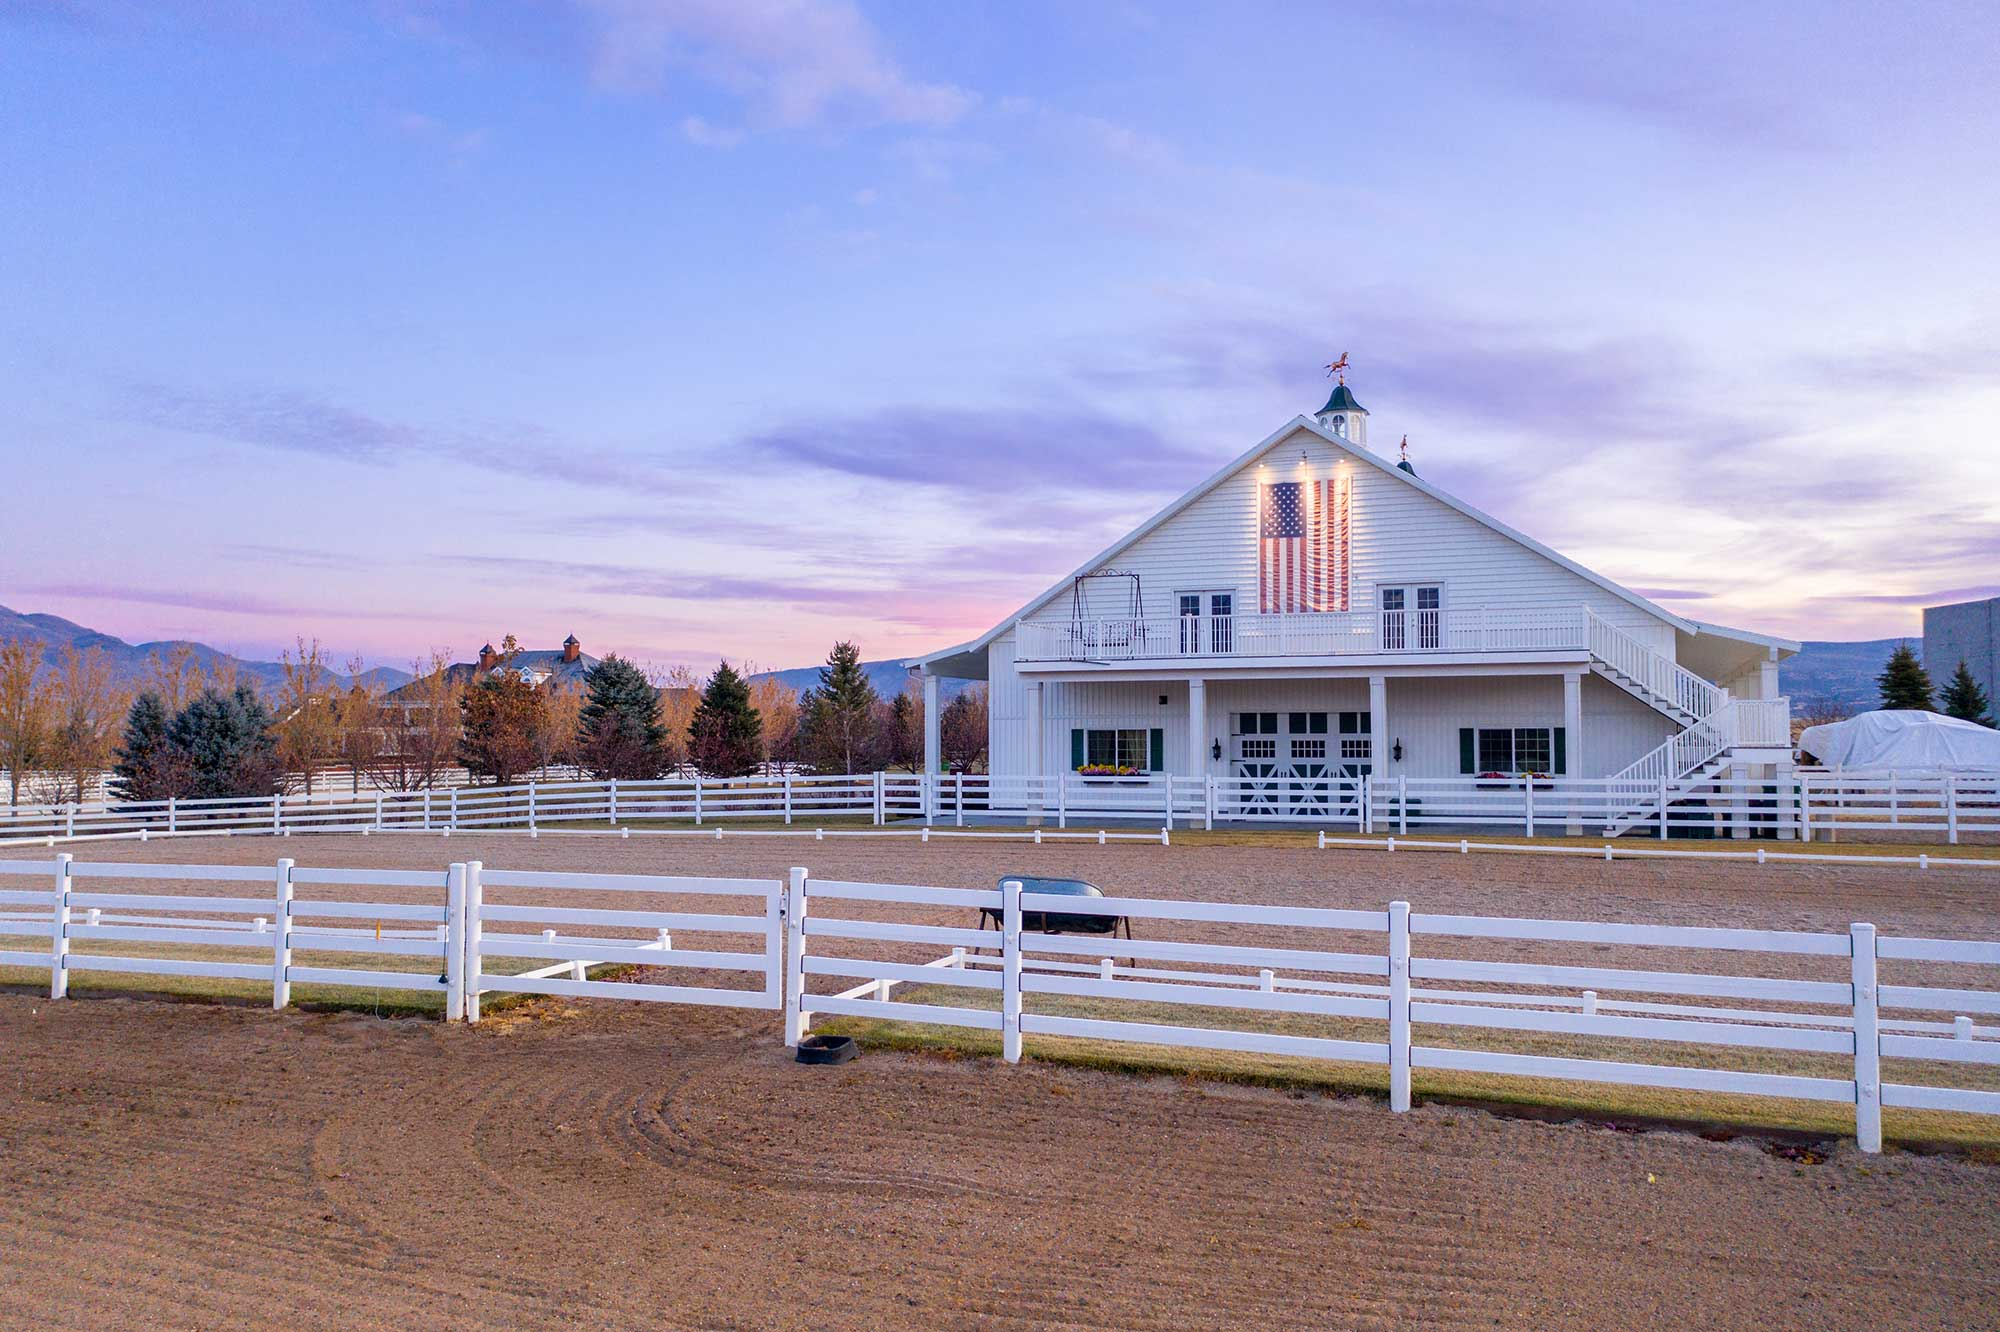 7 Reasons Buckley Fence is The World's Finest Horse Fence